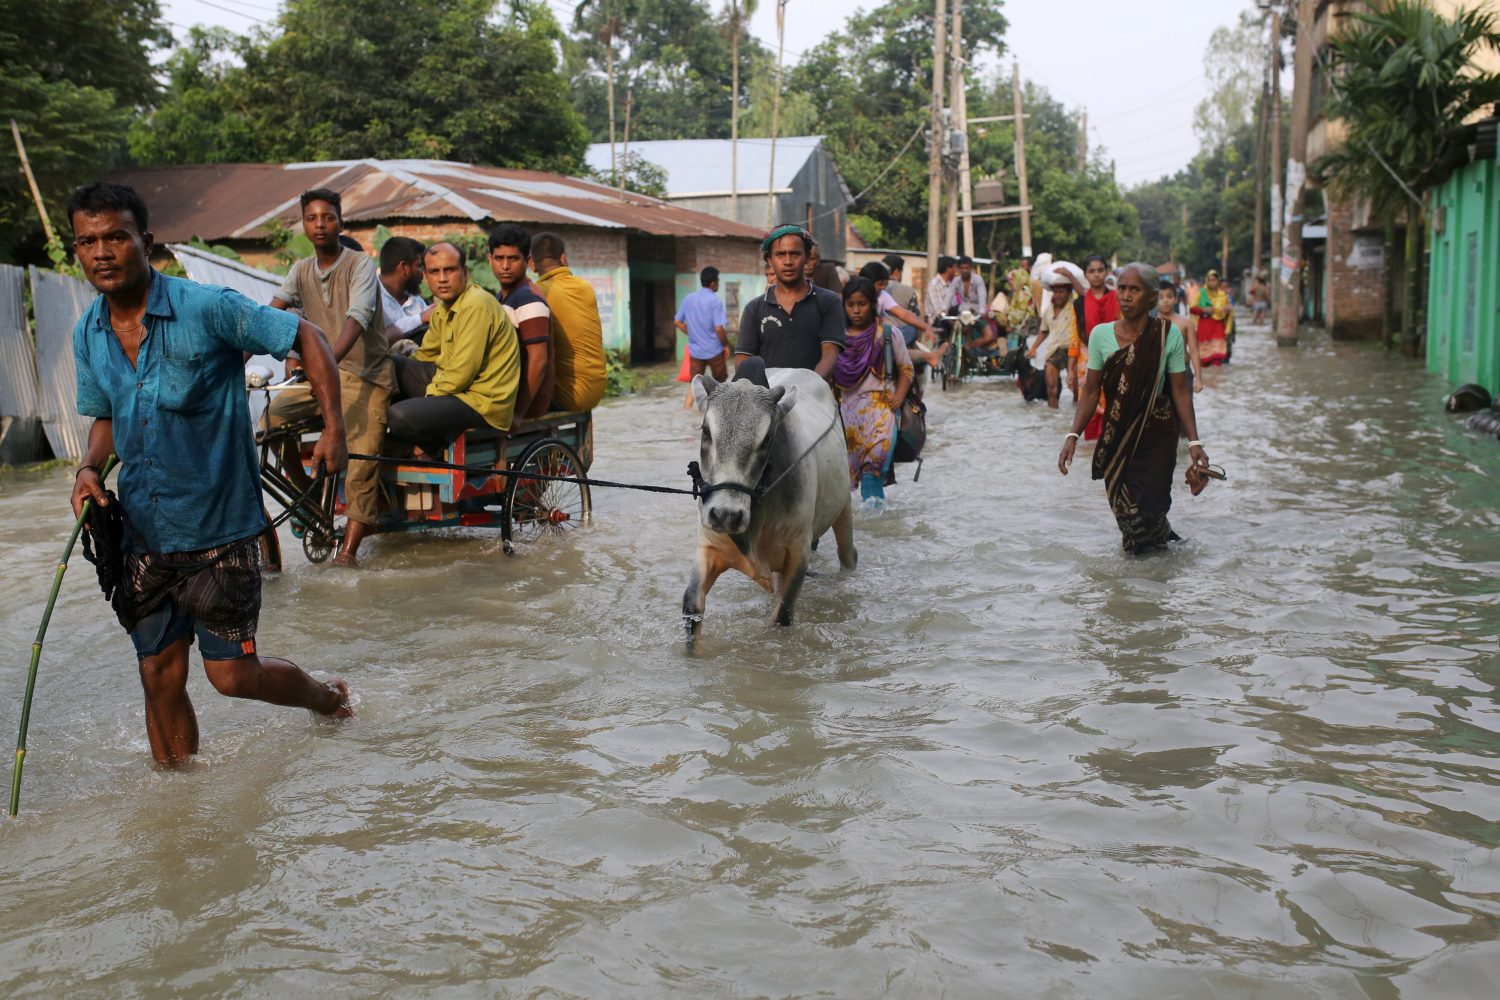 People move along a flooded road in Gaibandha, Bangladesh July 18, 2019. REUTERS/Stringer NO RESALES. NO ARCHIVES